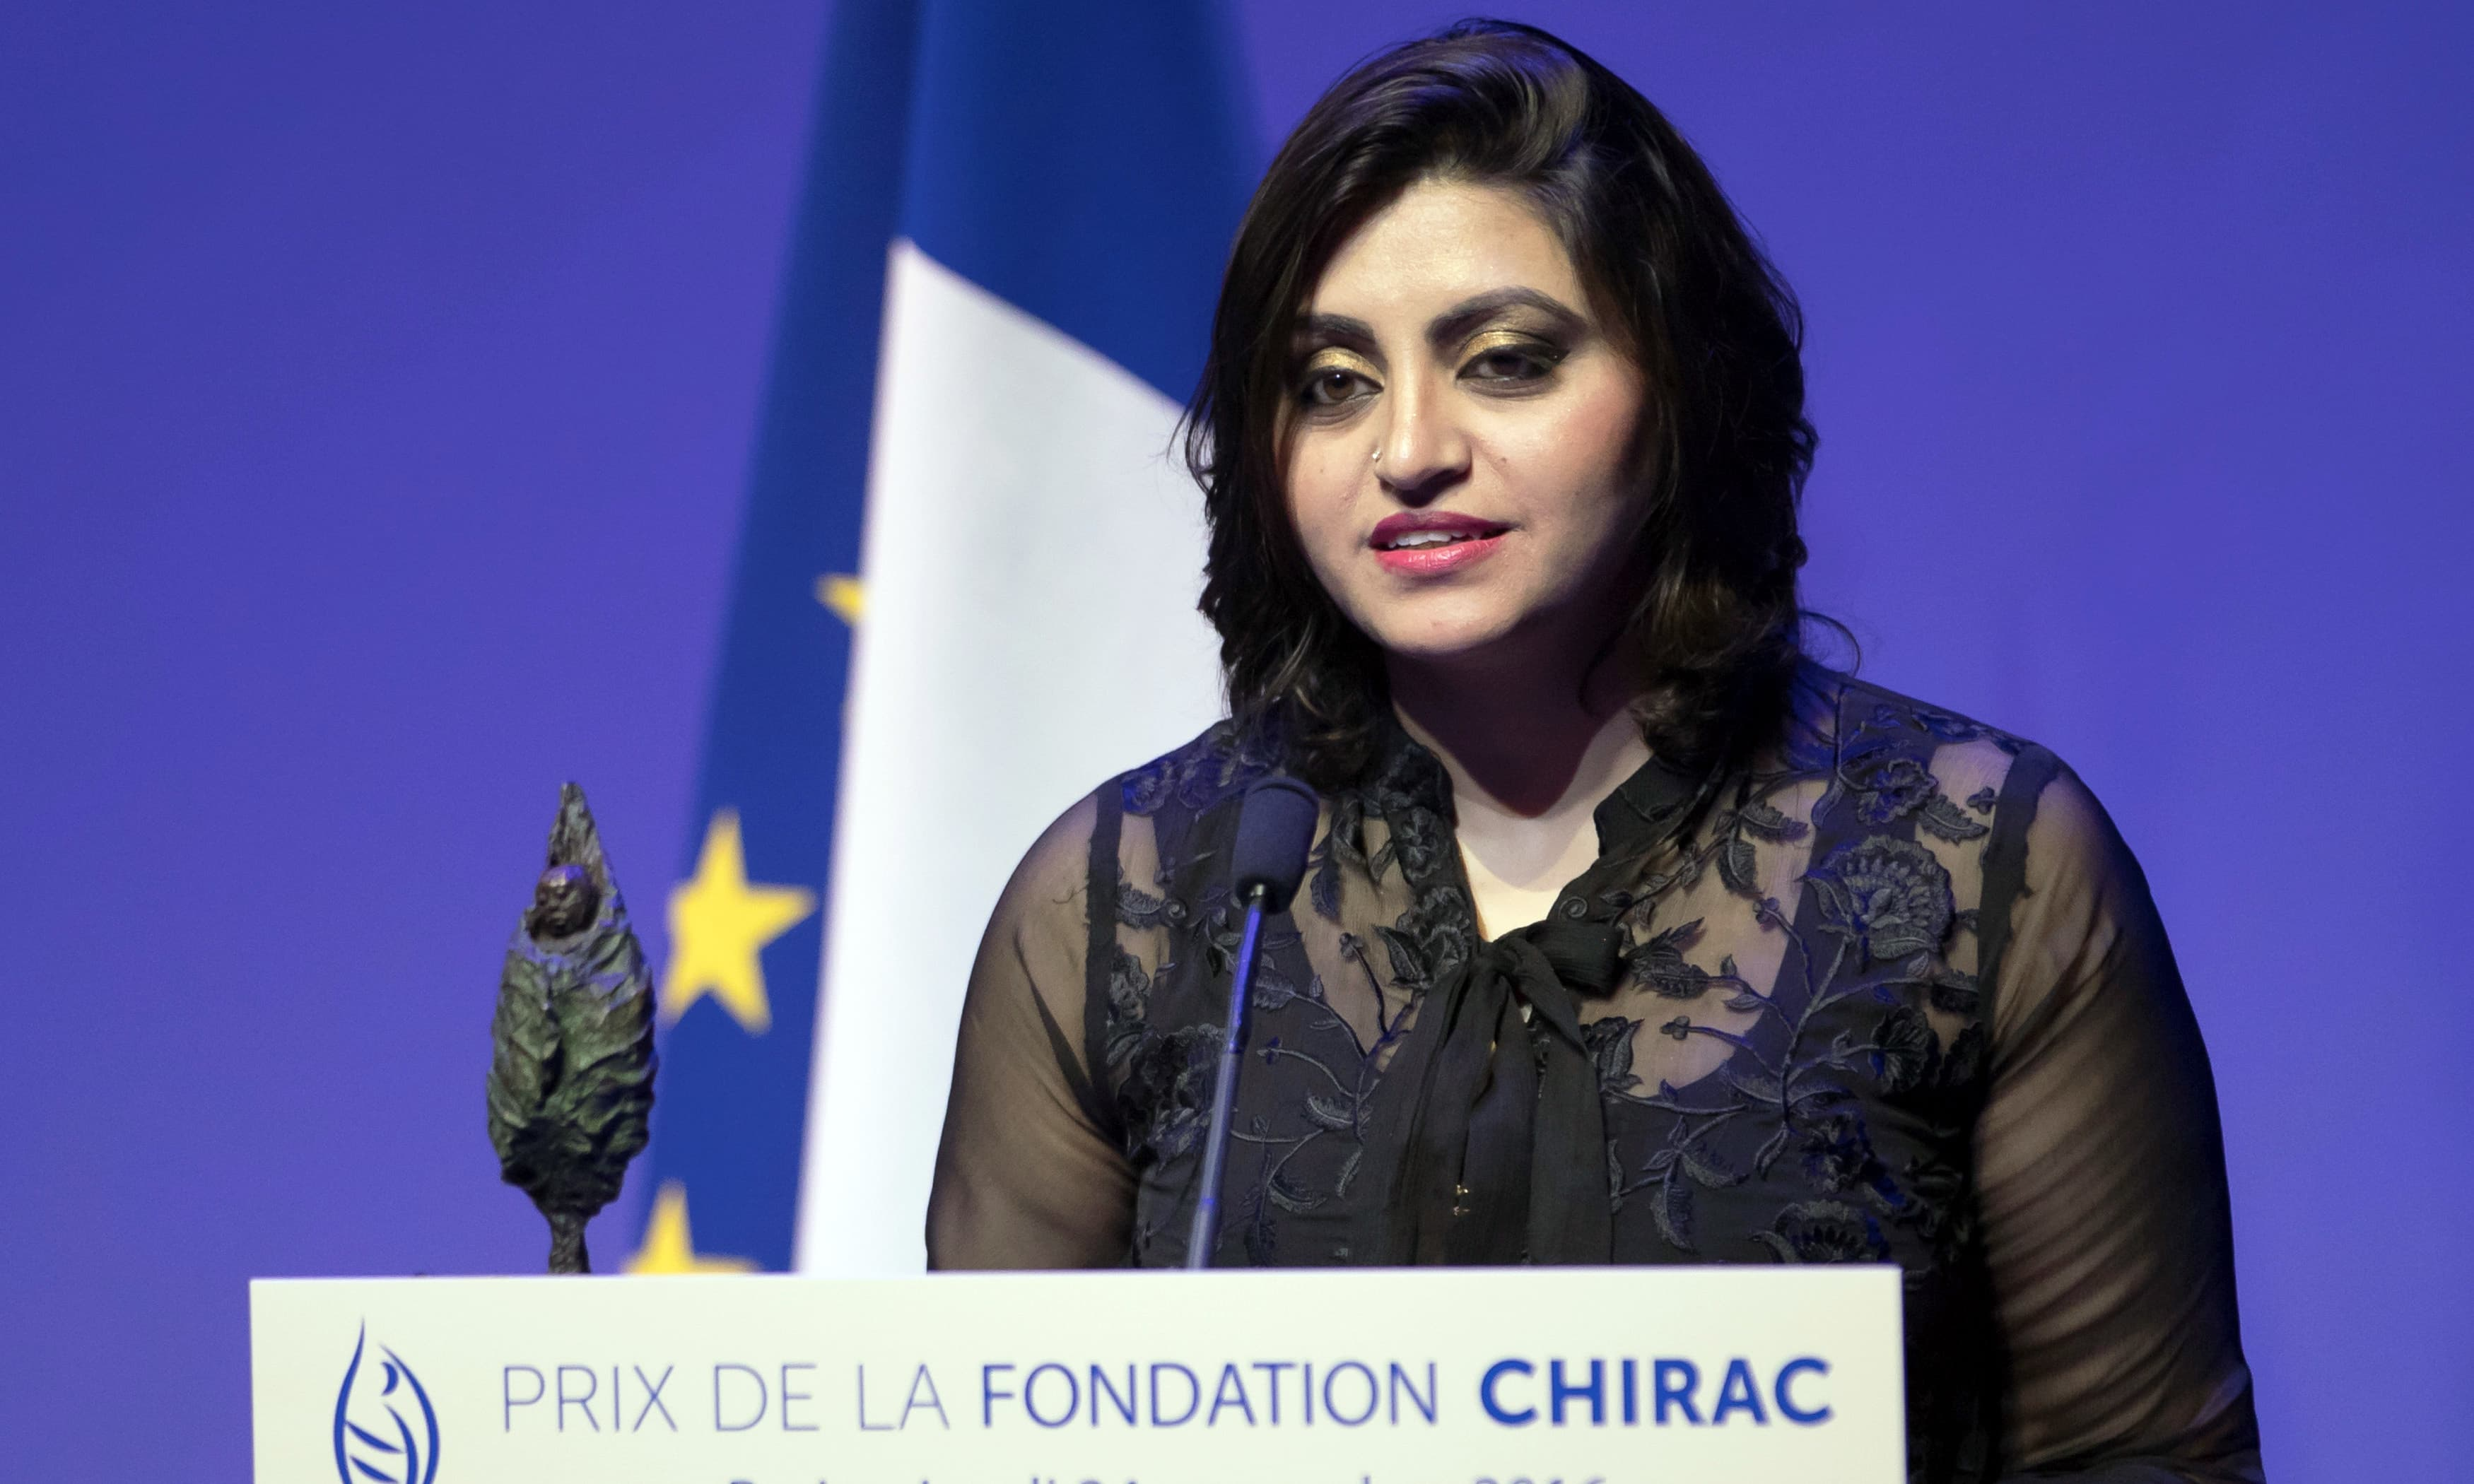 Gulalai Ismail delivers an acceptance speech after being awarded the Prize for Conflict Prevention for the work of her organisation 'Aware Girls' promoting women's issues and equality. —Reuters